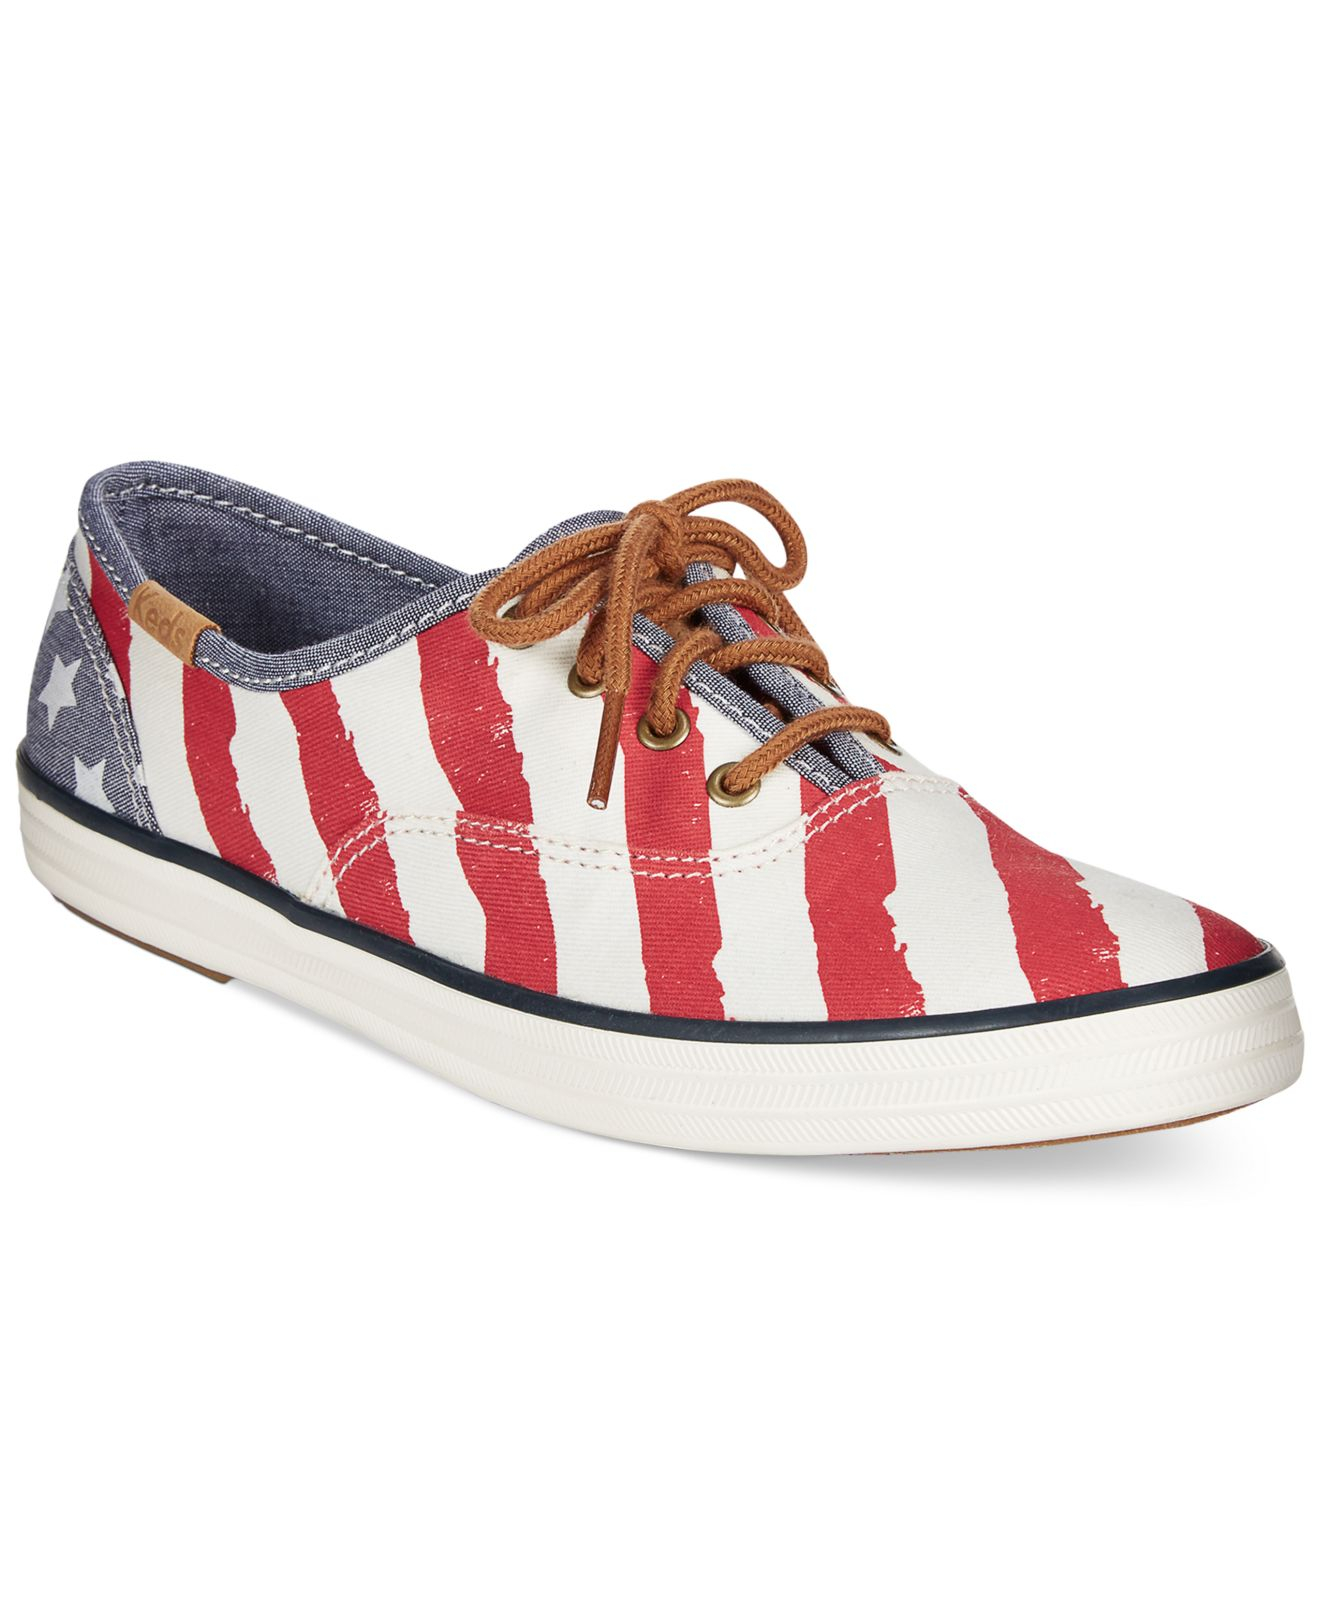 32eb2e10240 Lyst - Keds Women s Champion Patriotic Sneakers in Red